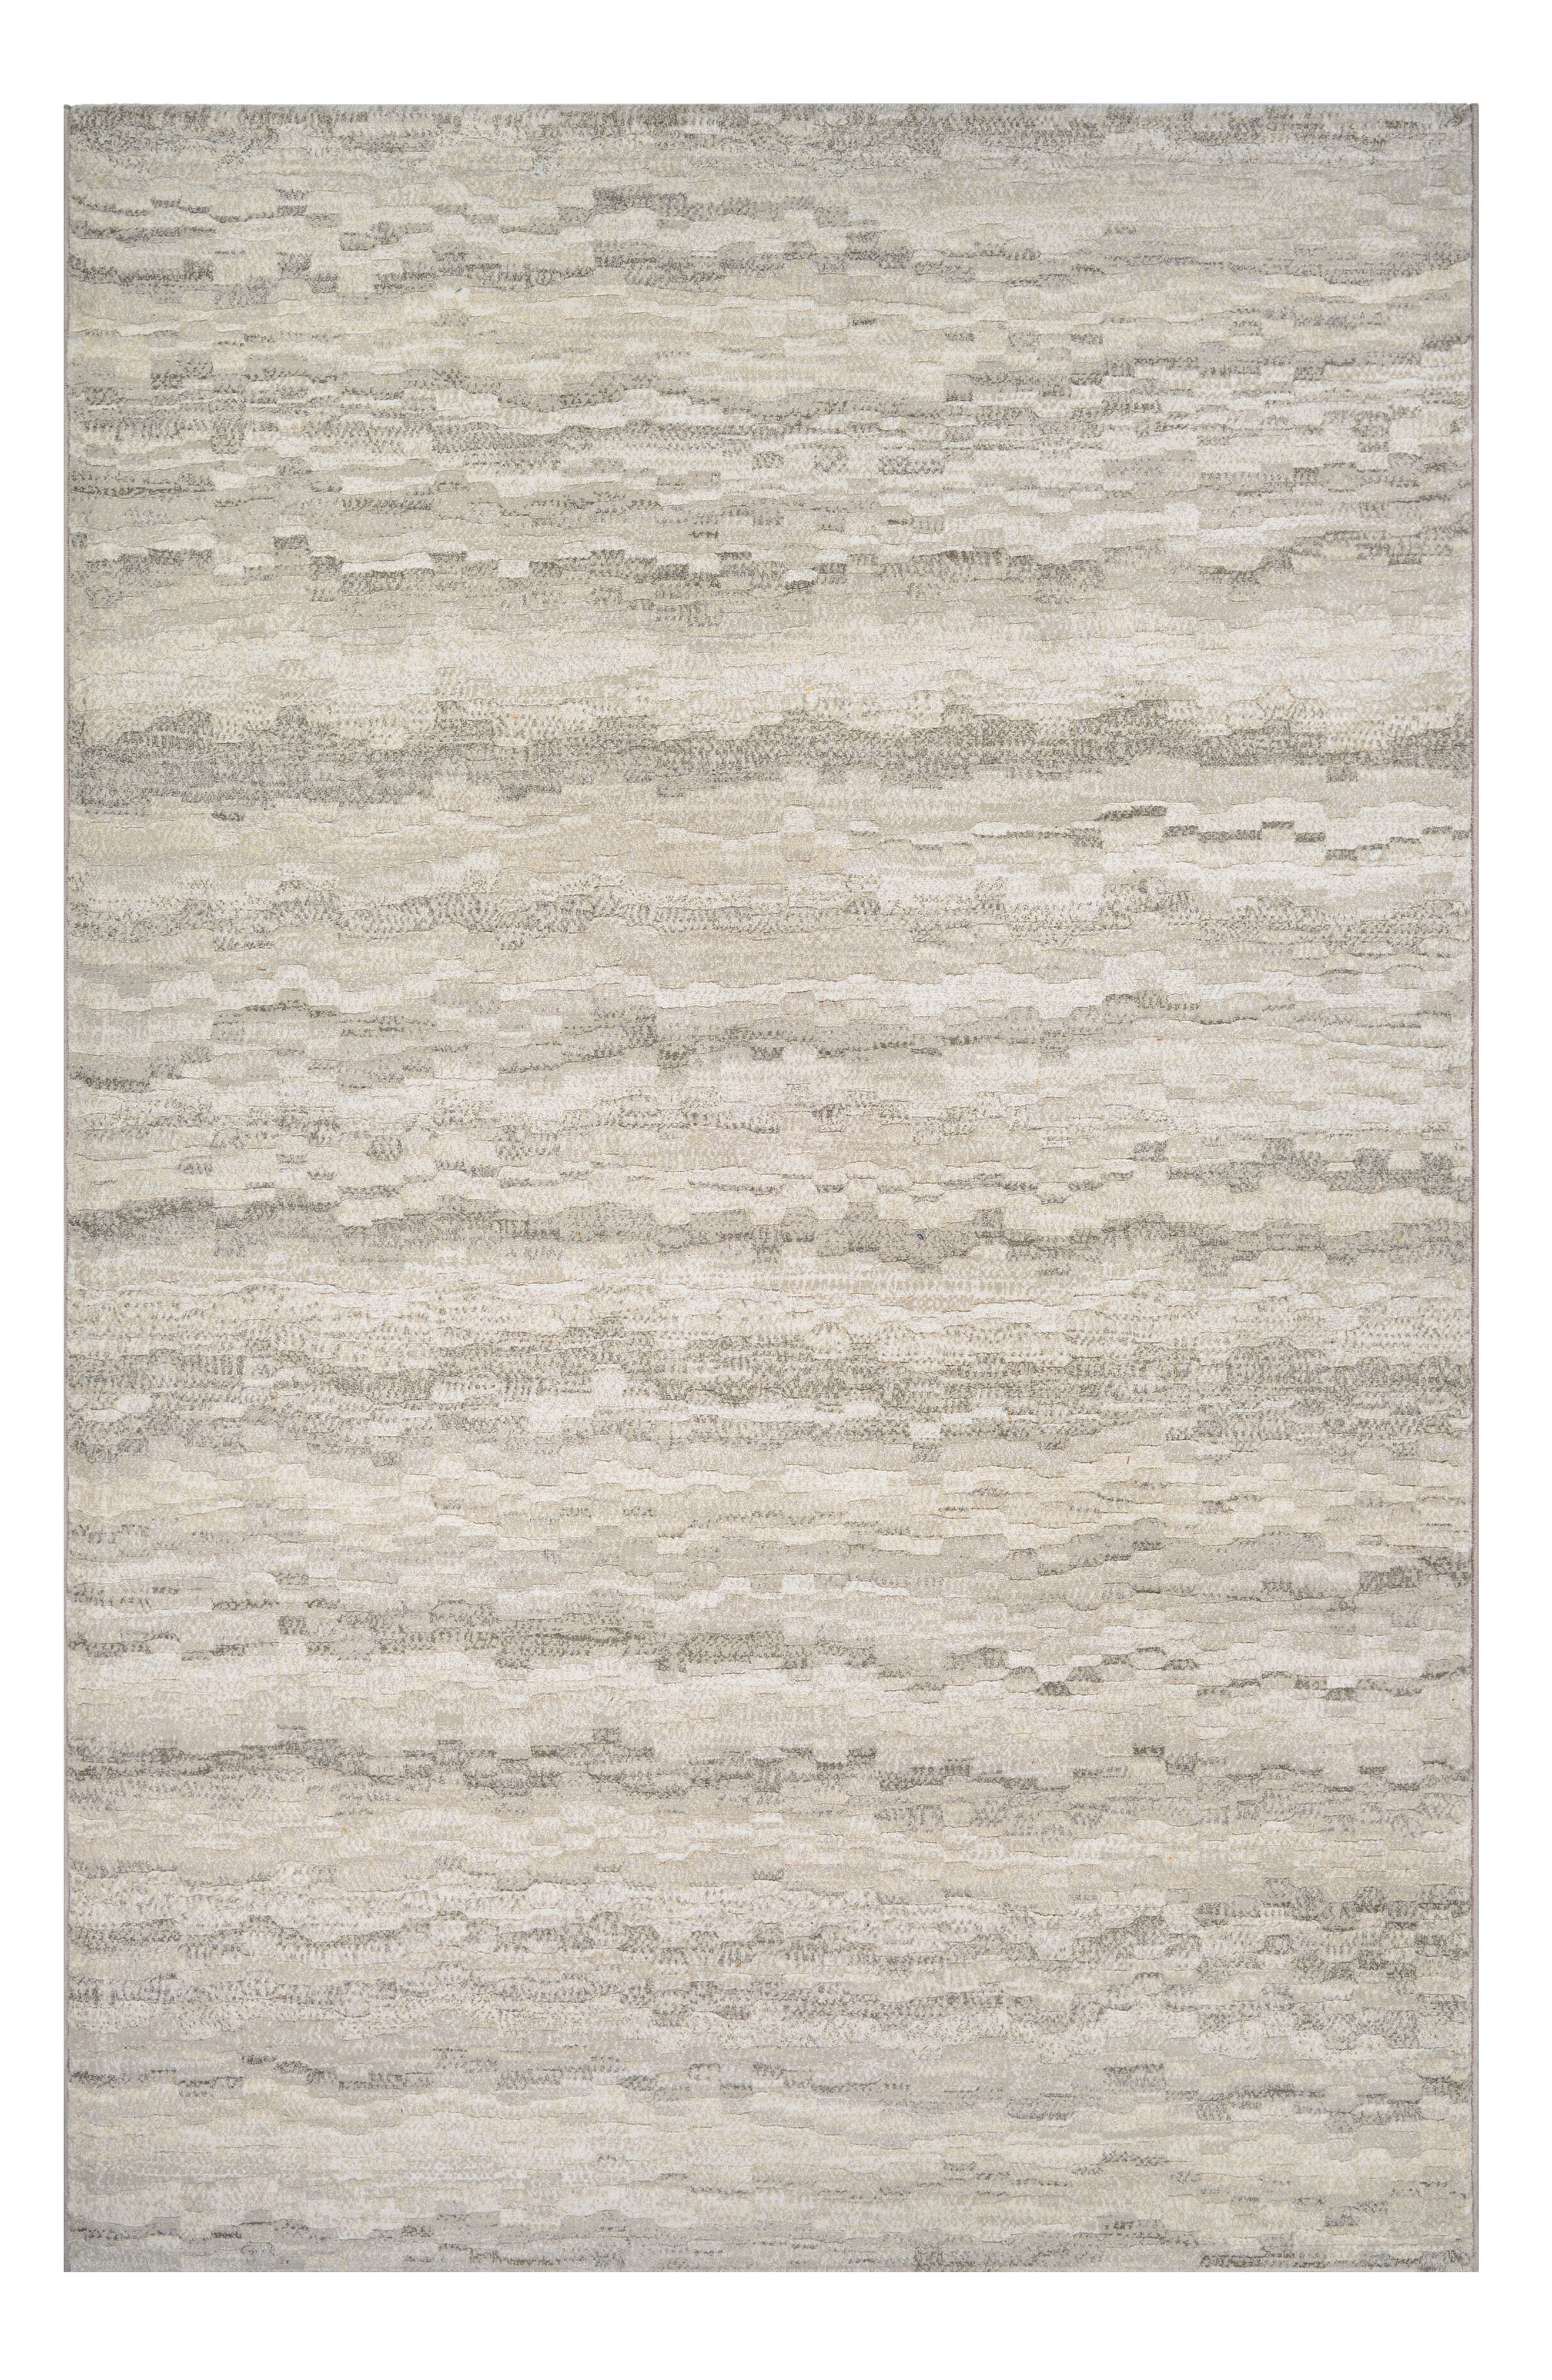 Shimmering Indoor/Outdoor Rug,                             Main thumbnail 1, color,                             250